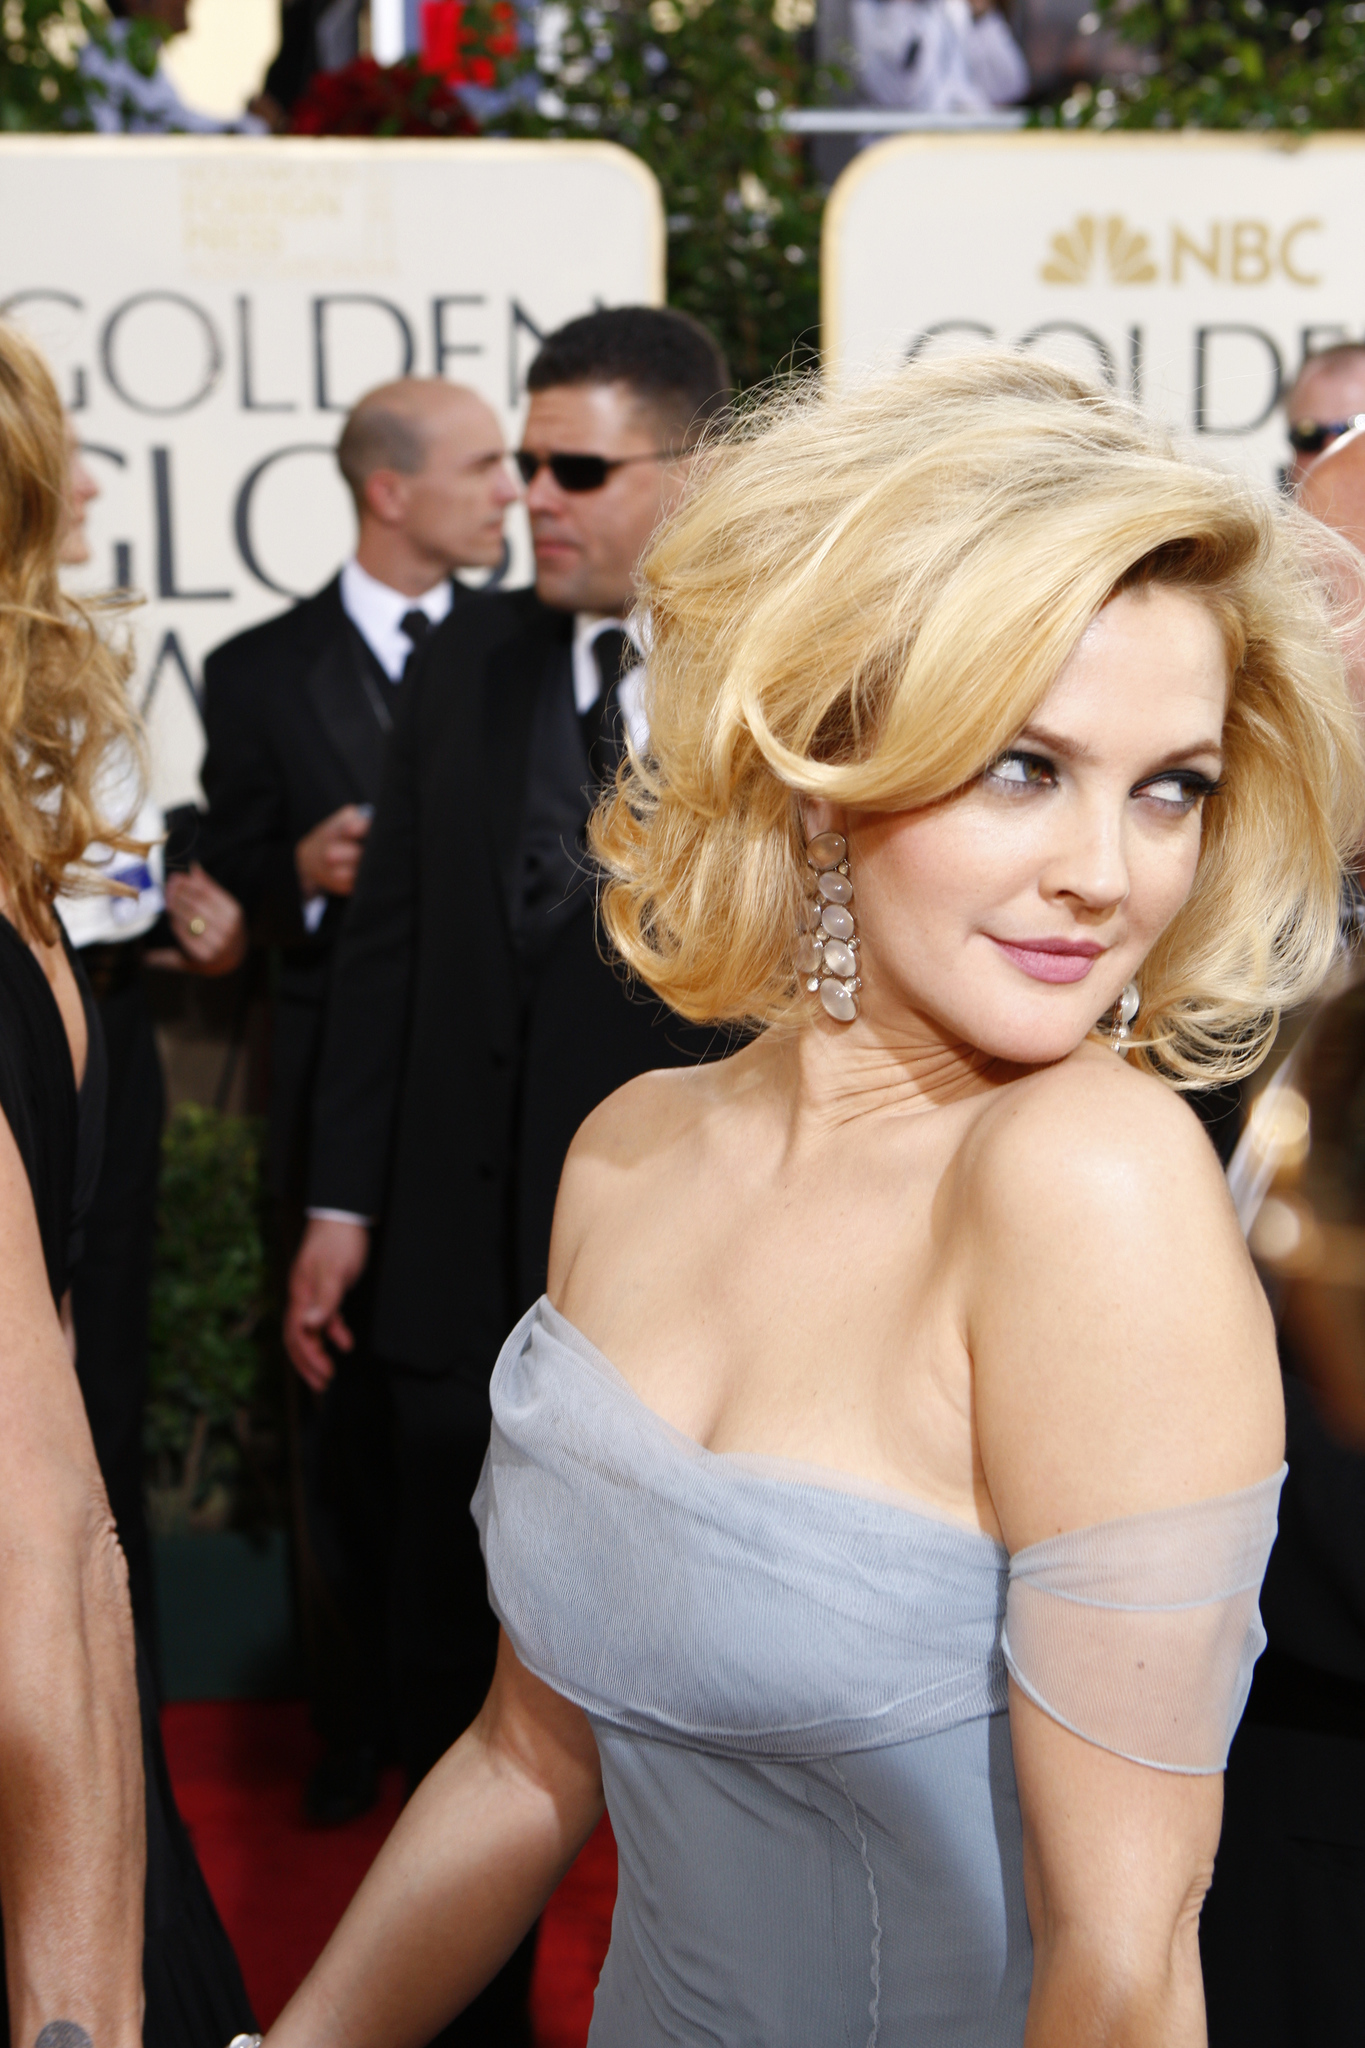 Drew Barrymore at an event for The 66th Annual Golden Globe Awards 2009 (2009)